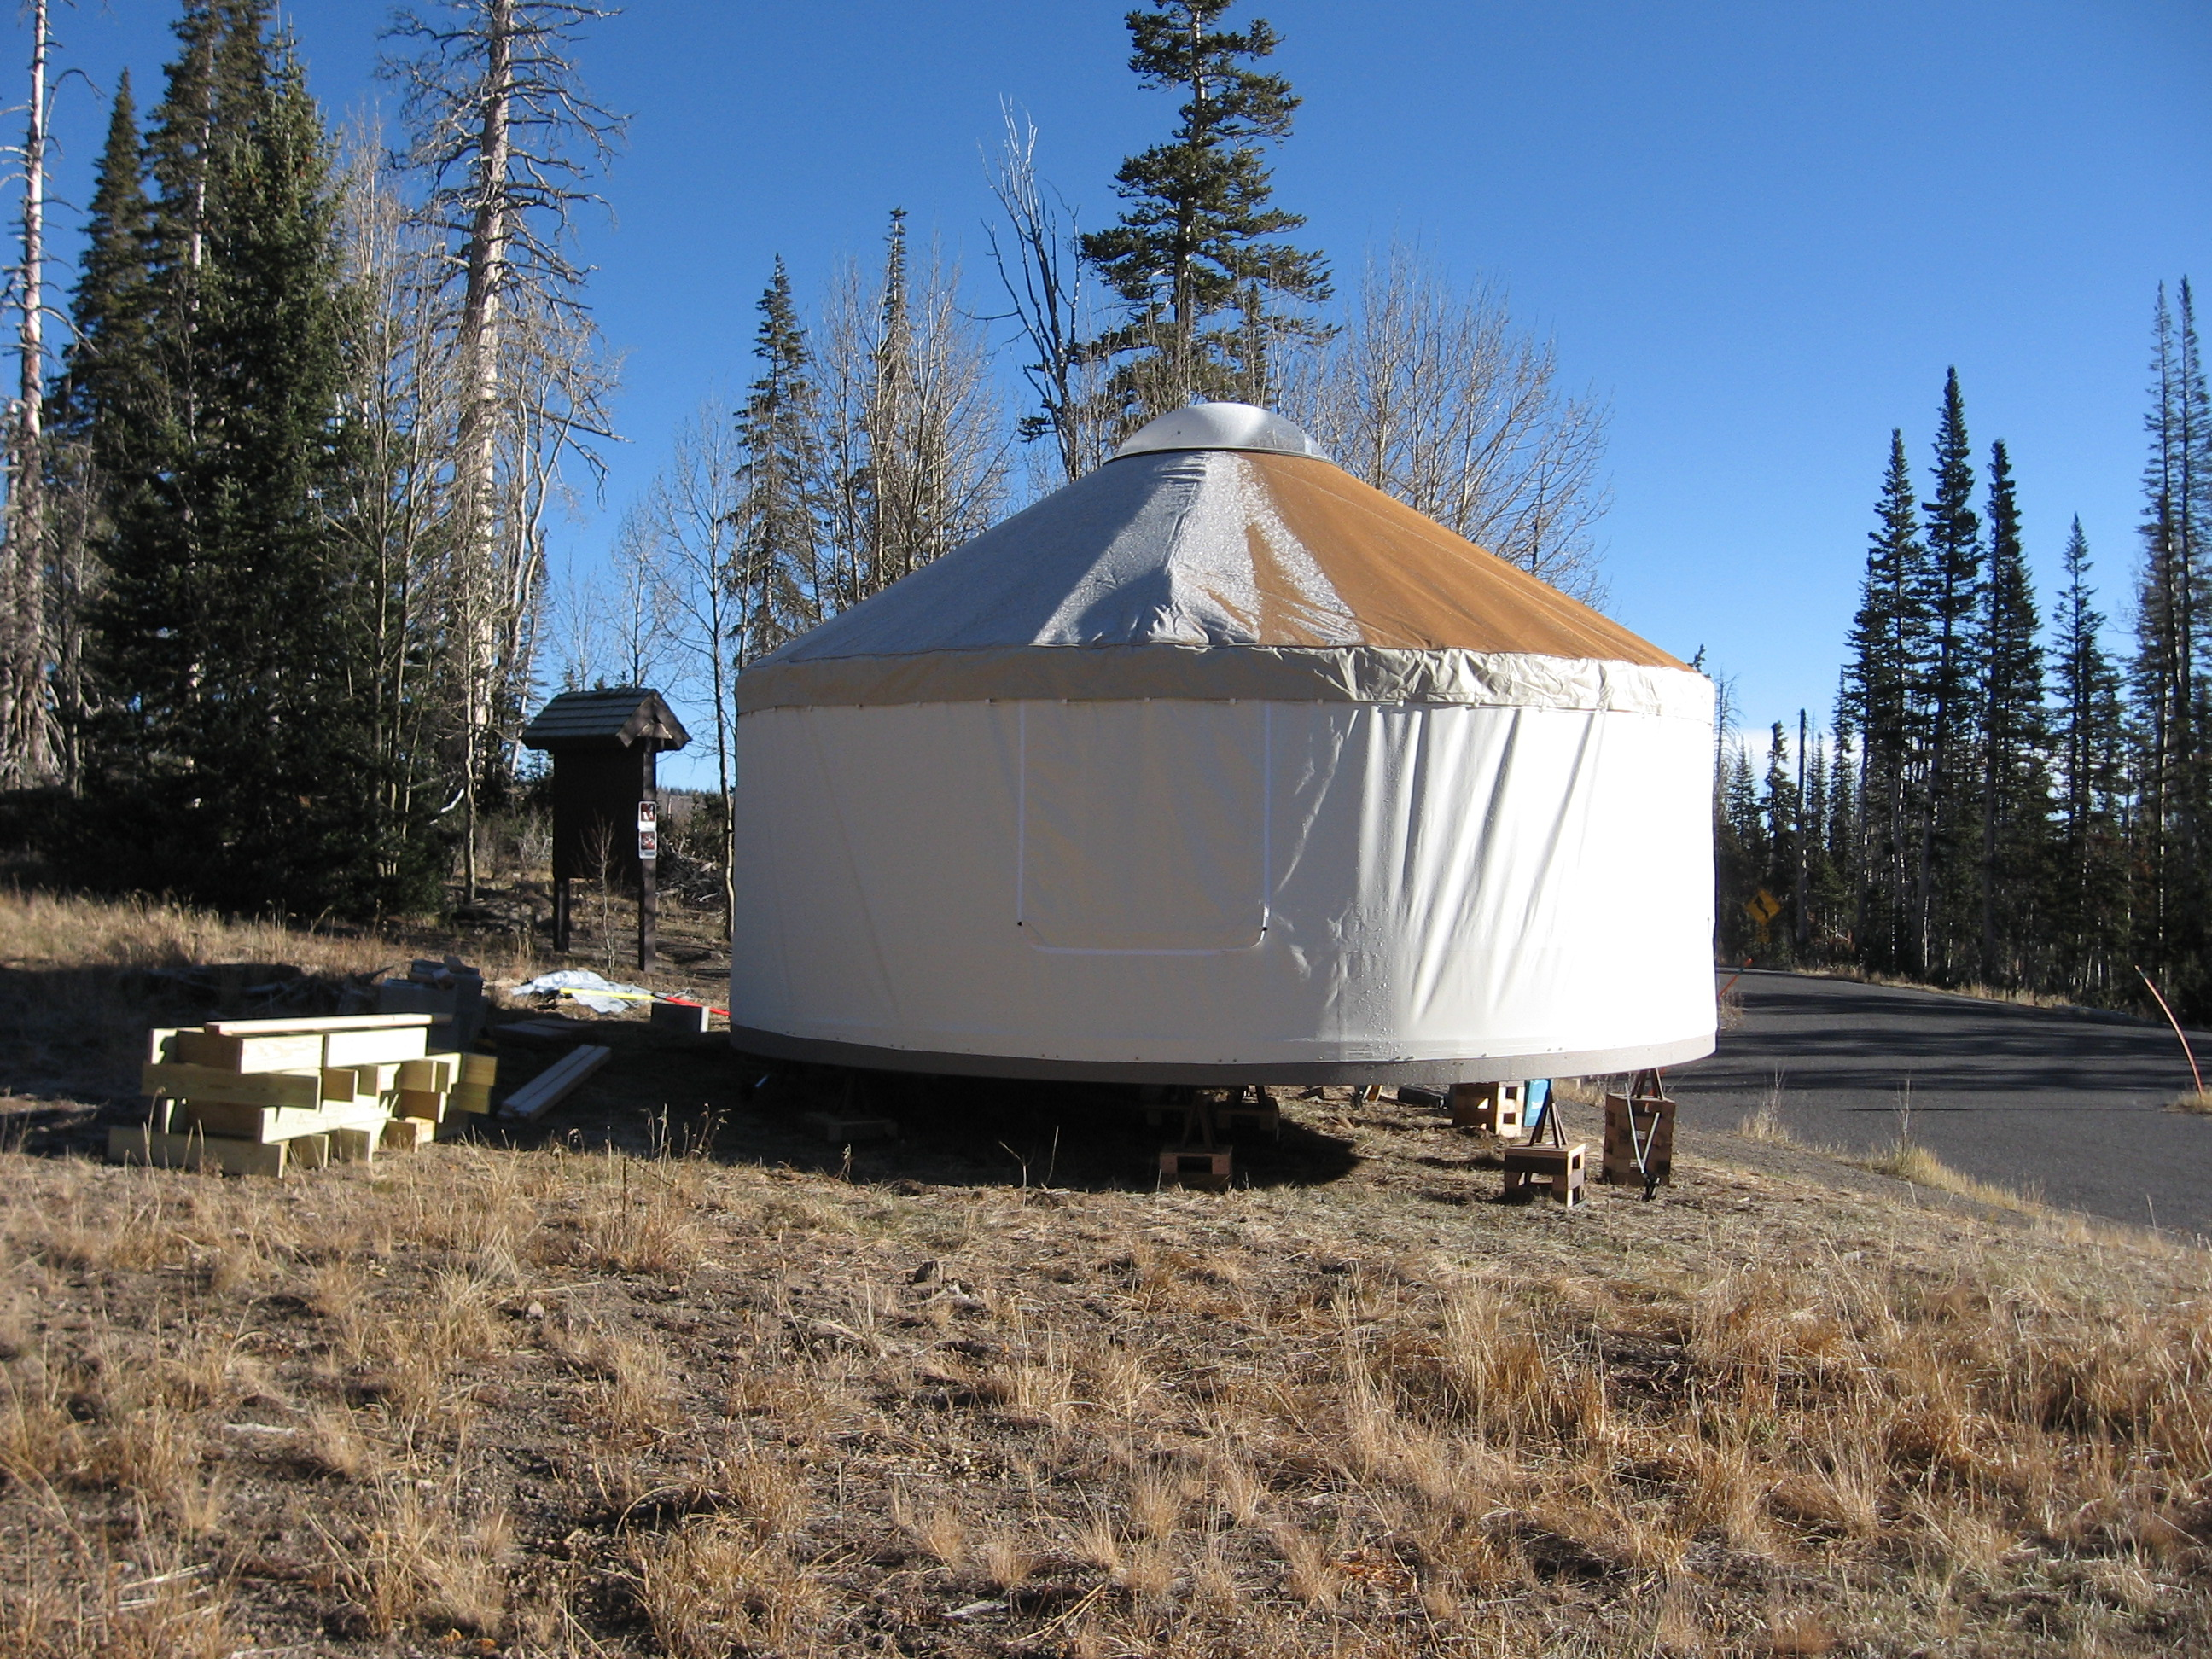 The assembled Yurt